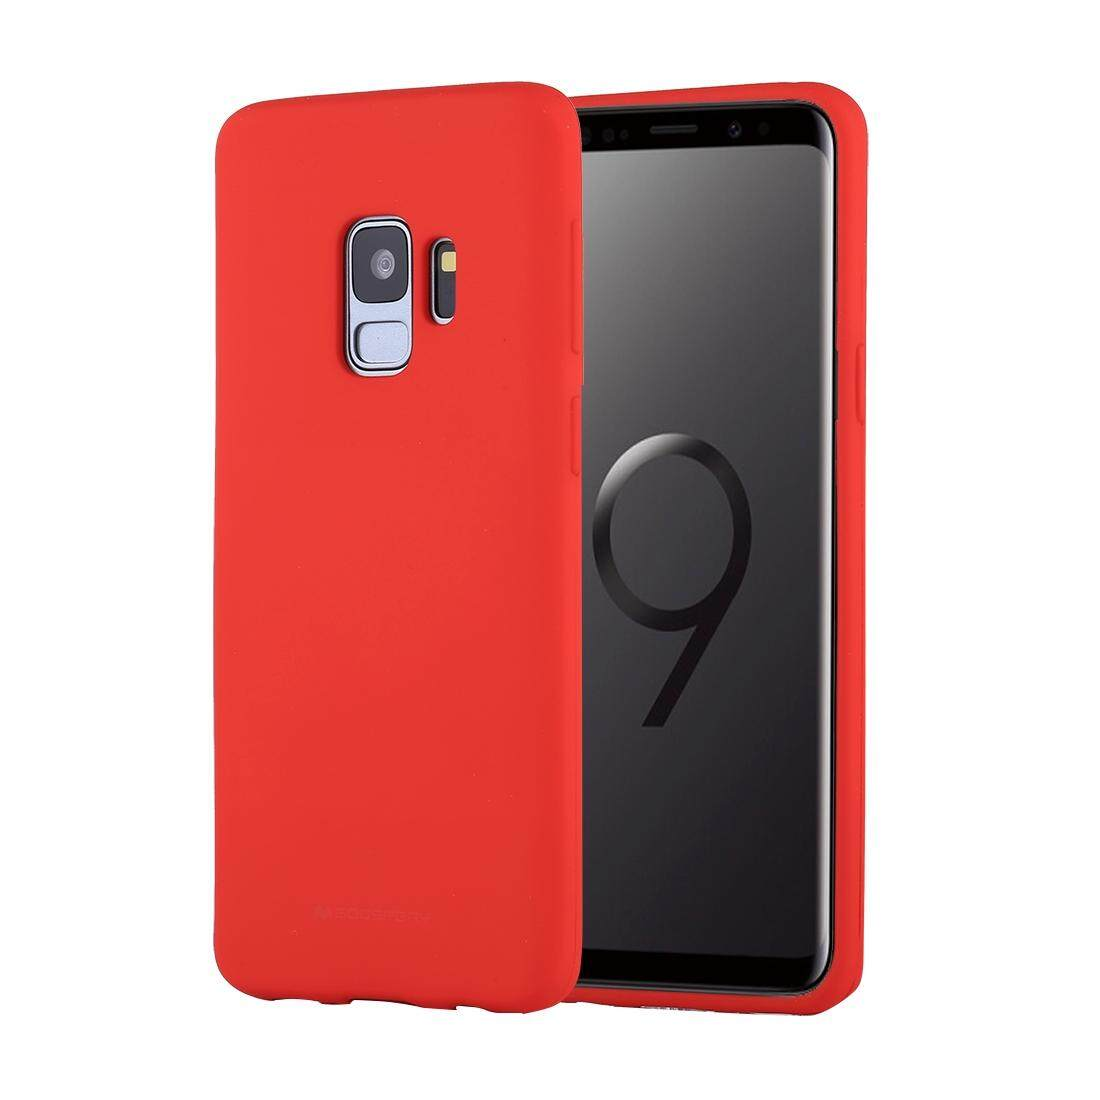 The Price Of Mercury Goospery Soft Feeling For Iphone 8 Plus And 7 Sky Slide Bumper Case Red Samsung Galaxy S9 Tpu Drop Proof Protective Back Cover